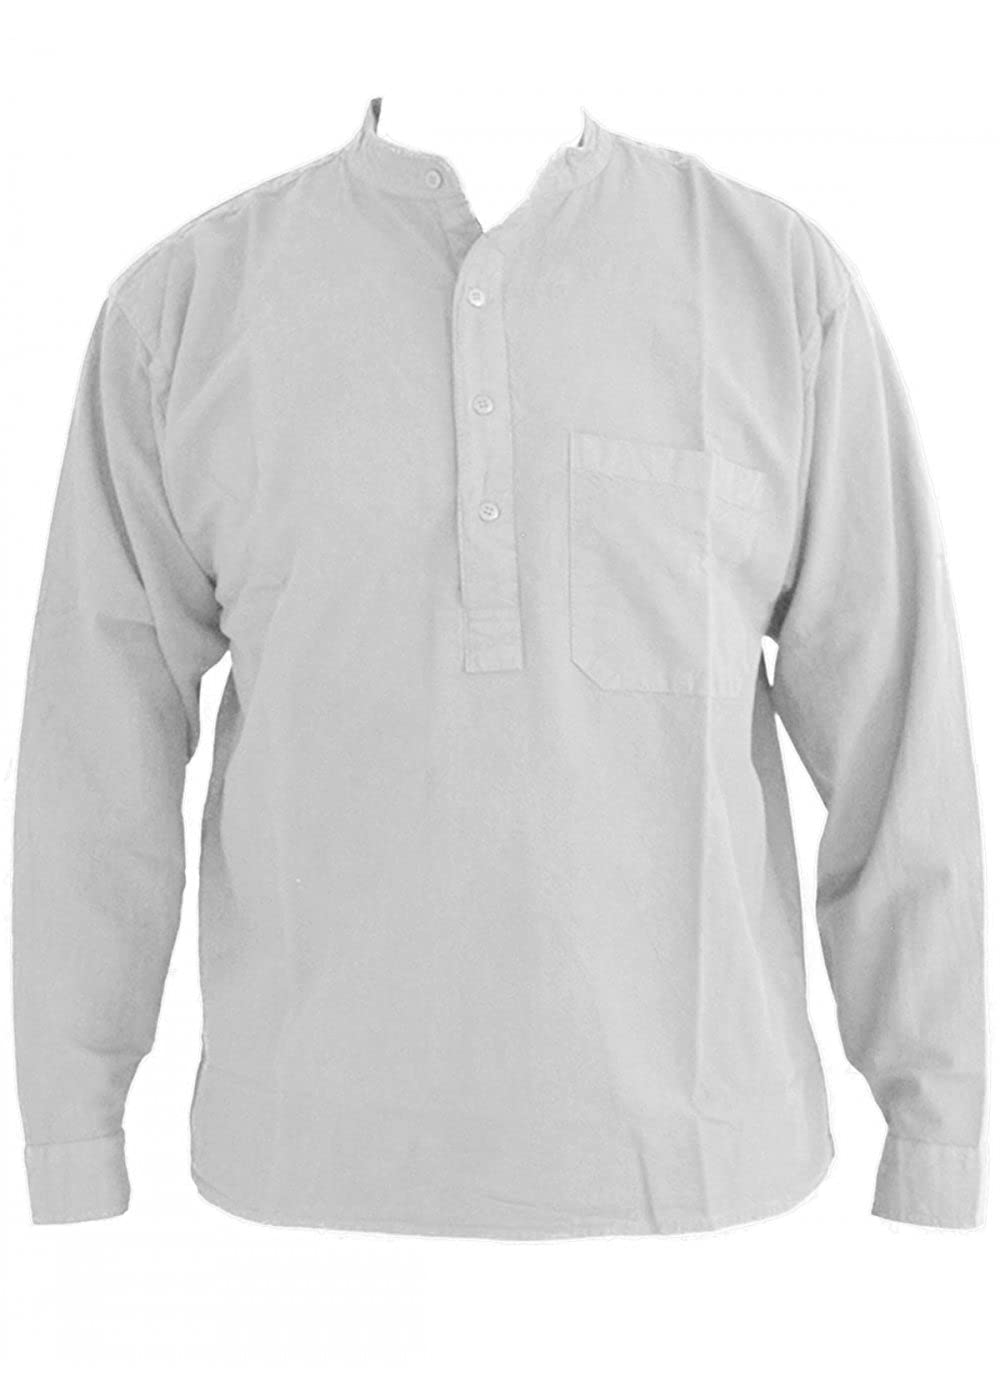 1920s Men's Fashion UK | Peaky Blinders Clothing White Grandad Collarless Shirt Cotton Sizes Small to 2XL £23.99 AT vintagedancer.com